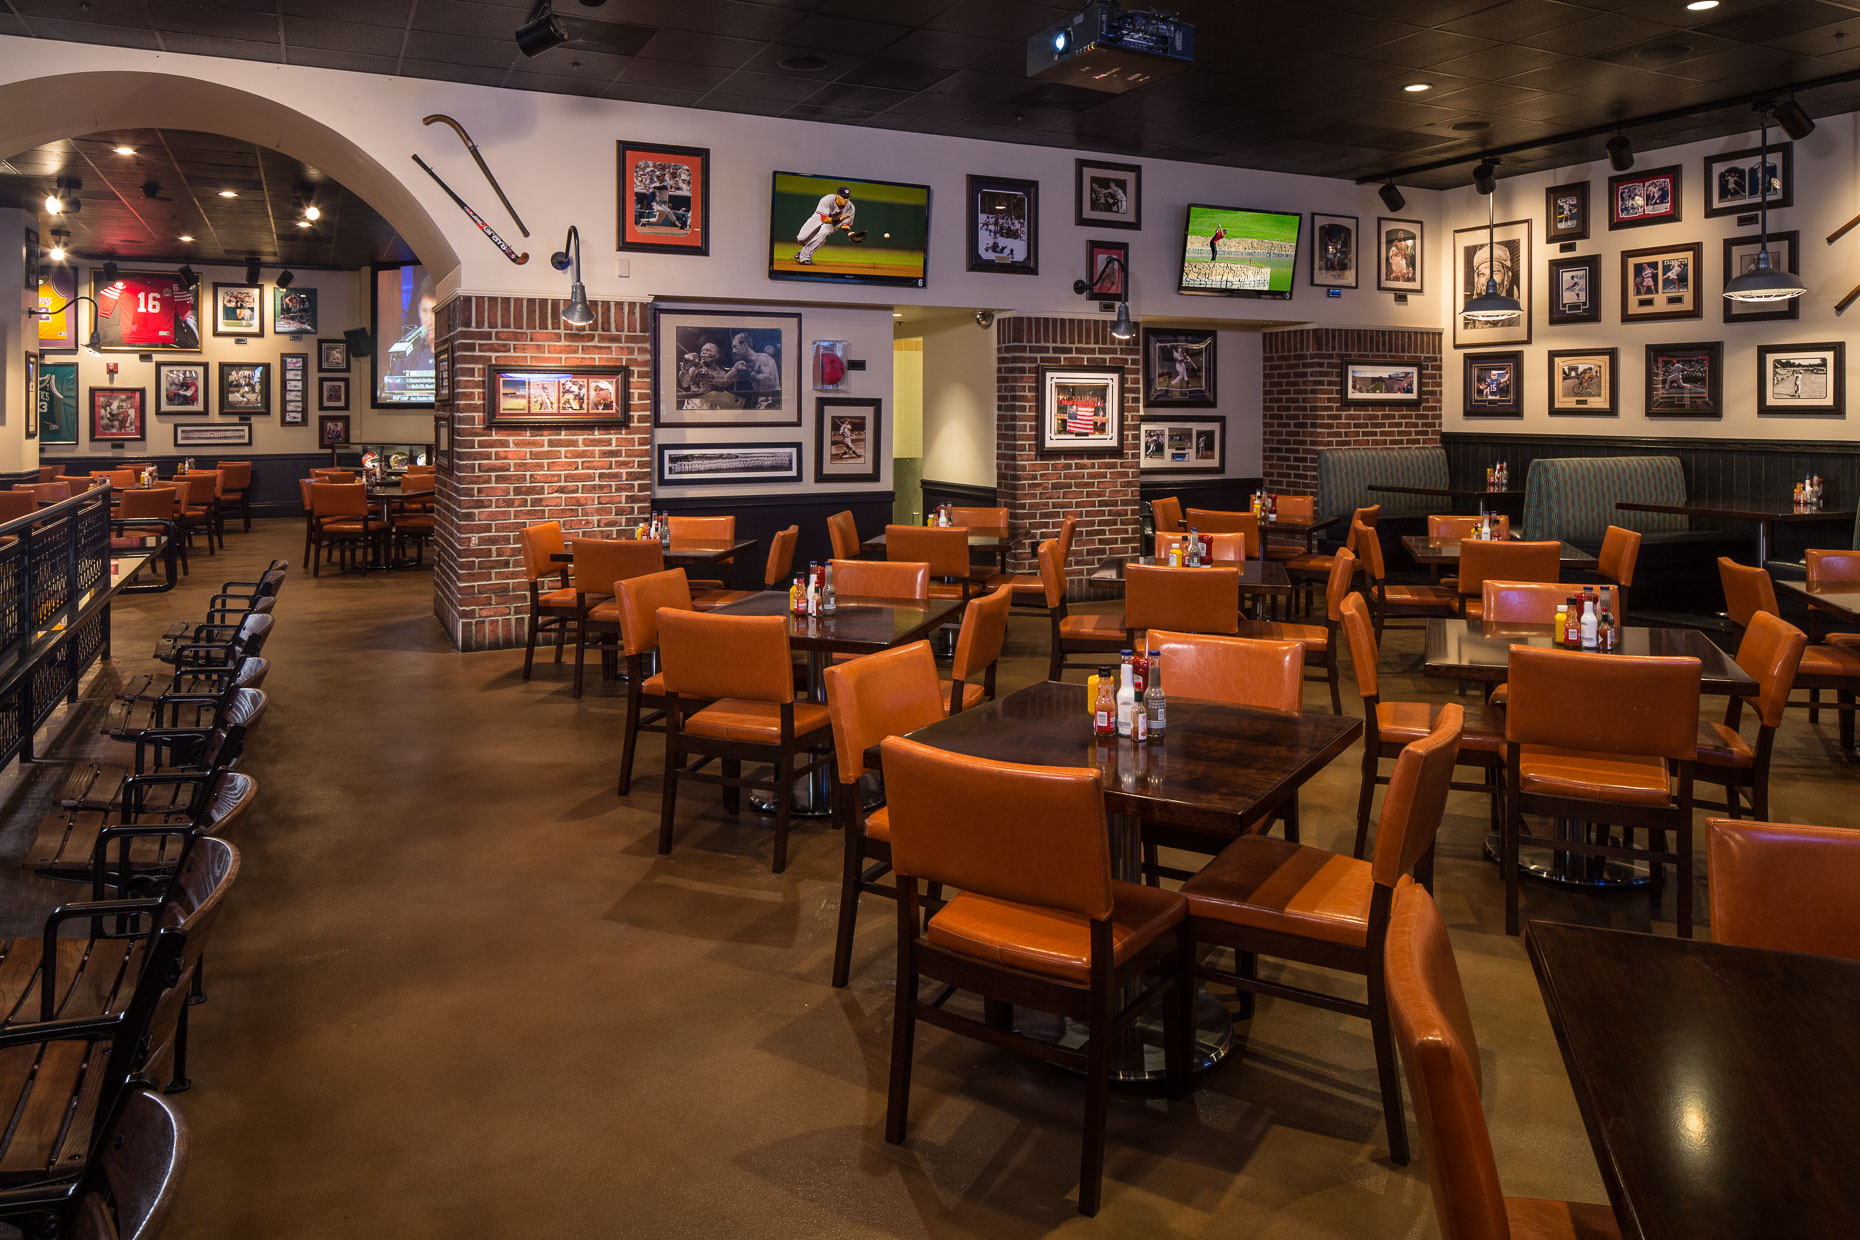 Champions Restaurant  - Mark Borosch Photography - Tampa, FL